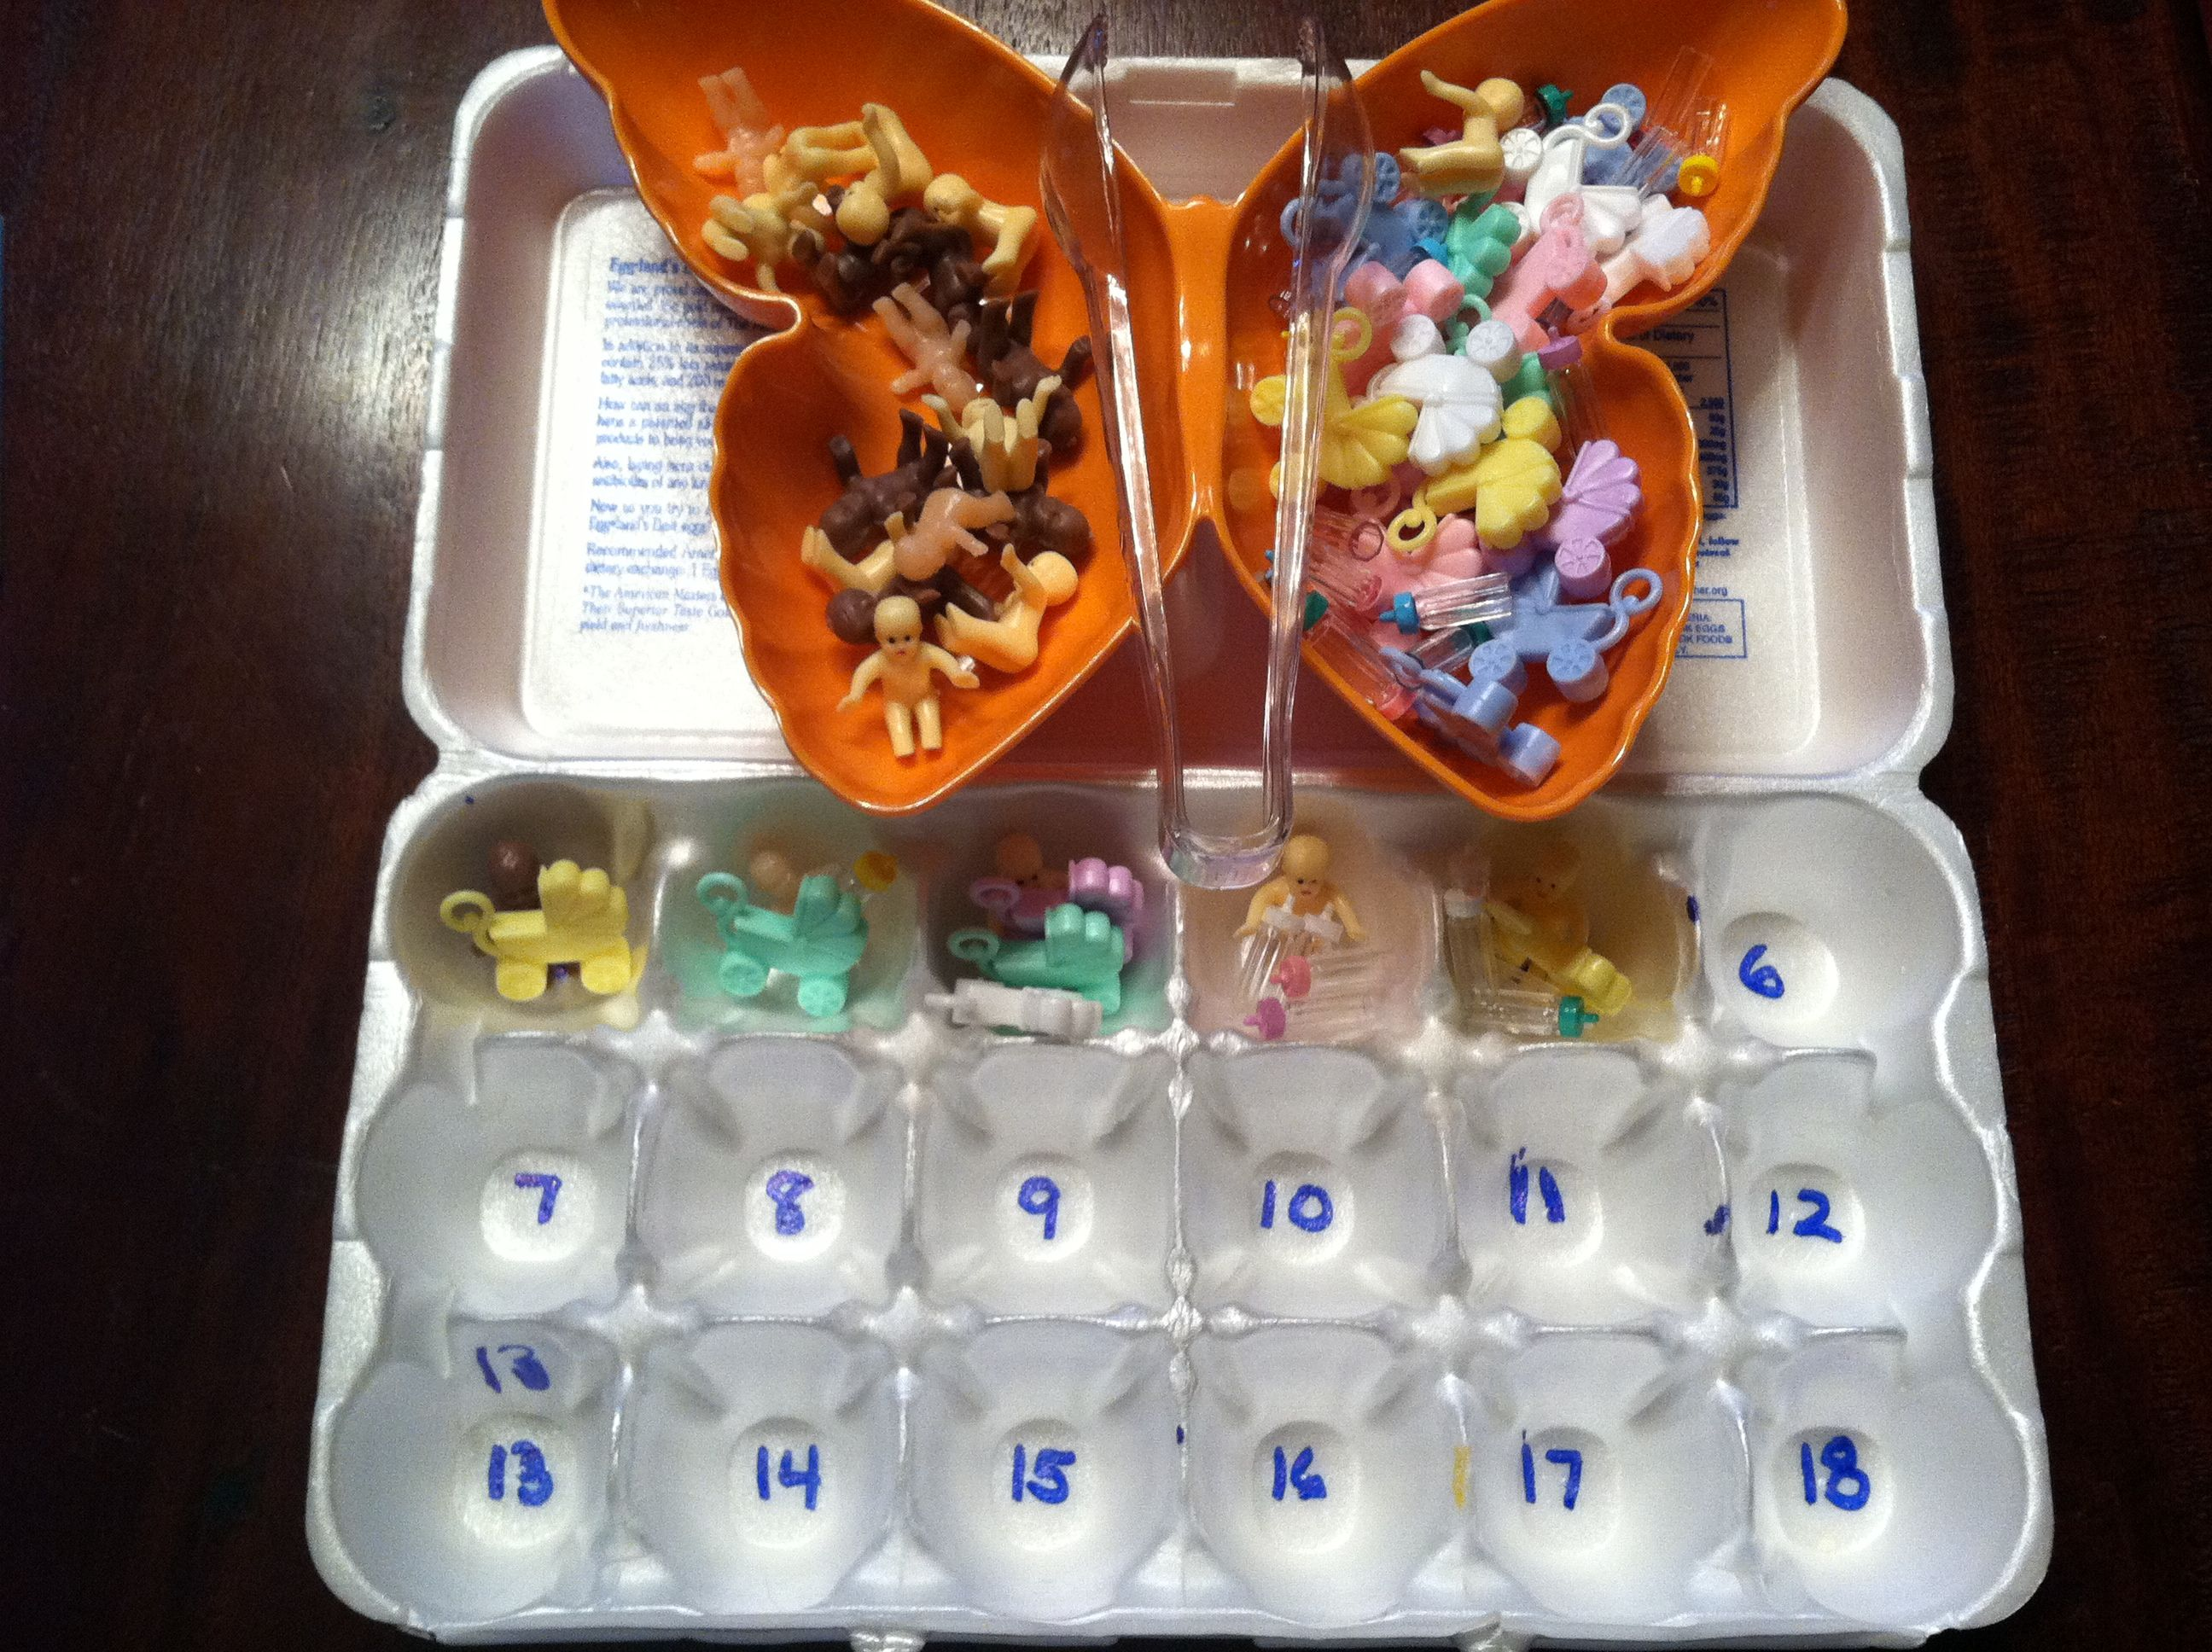 """Babysitter Counting Game:  One dollar for bag of cake decorating babies from bakery, dollar store baby shower decor tiny bottles & carriages.  """"Babysitter"""" puts baby in each numbered section then decides what baby needs and adds in appropriate amount to match number.  My daughter loves this activity!  Can use with tongs for small motor skills practice."""